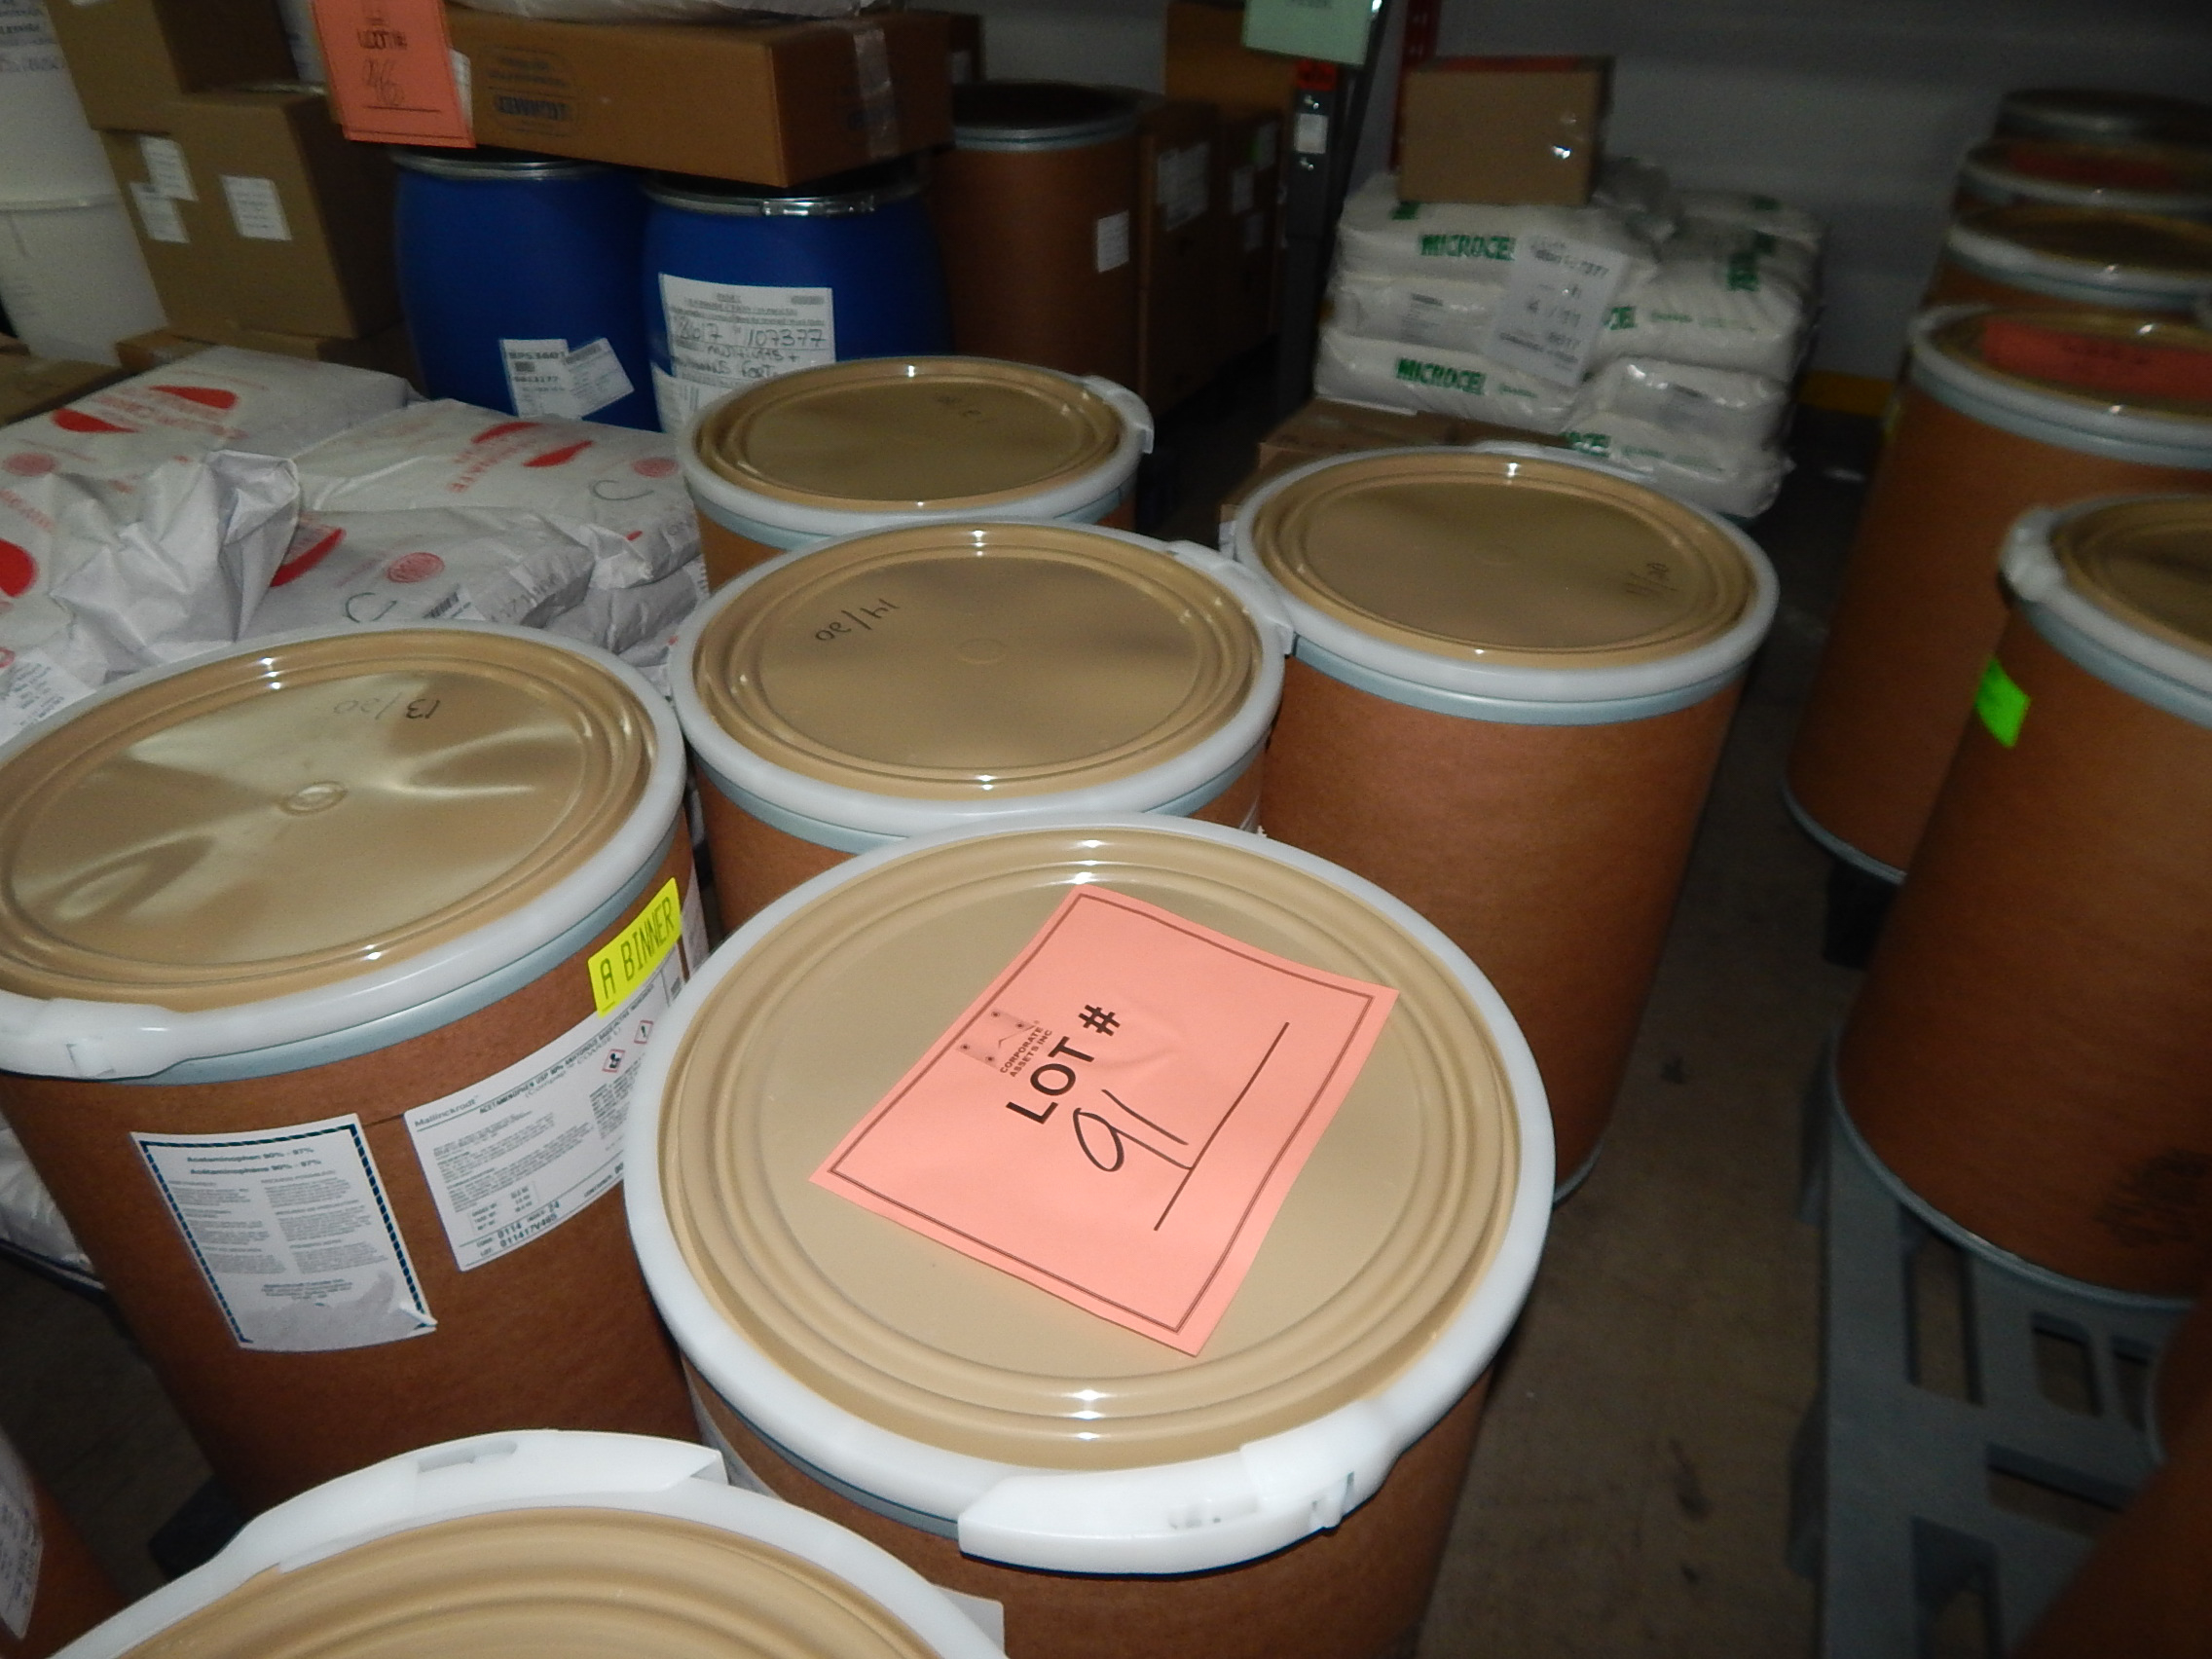 Lot 91 - LOT/ SKID WITH CONTENTS CONSISTING OF 50KG DRUMS OF ACETAMINOPHEN